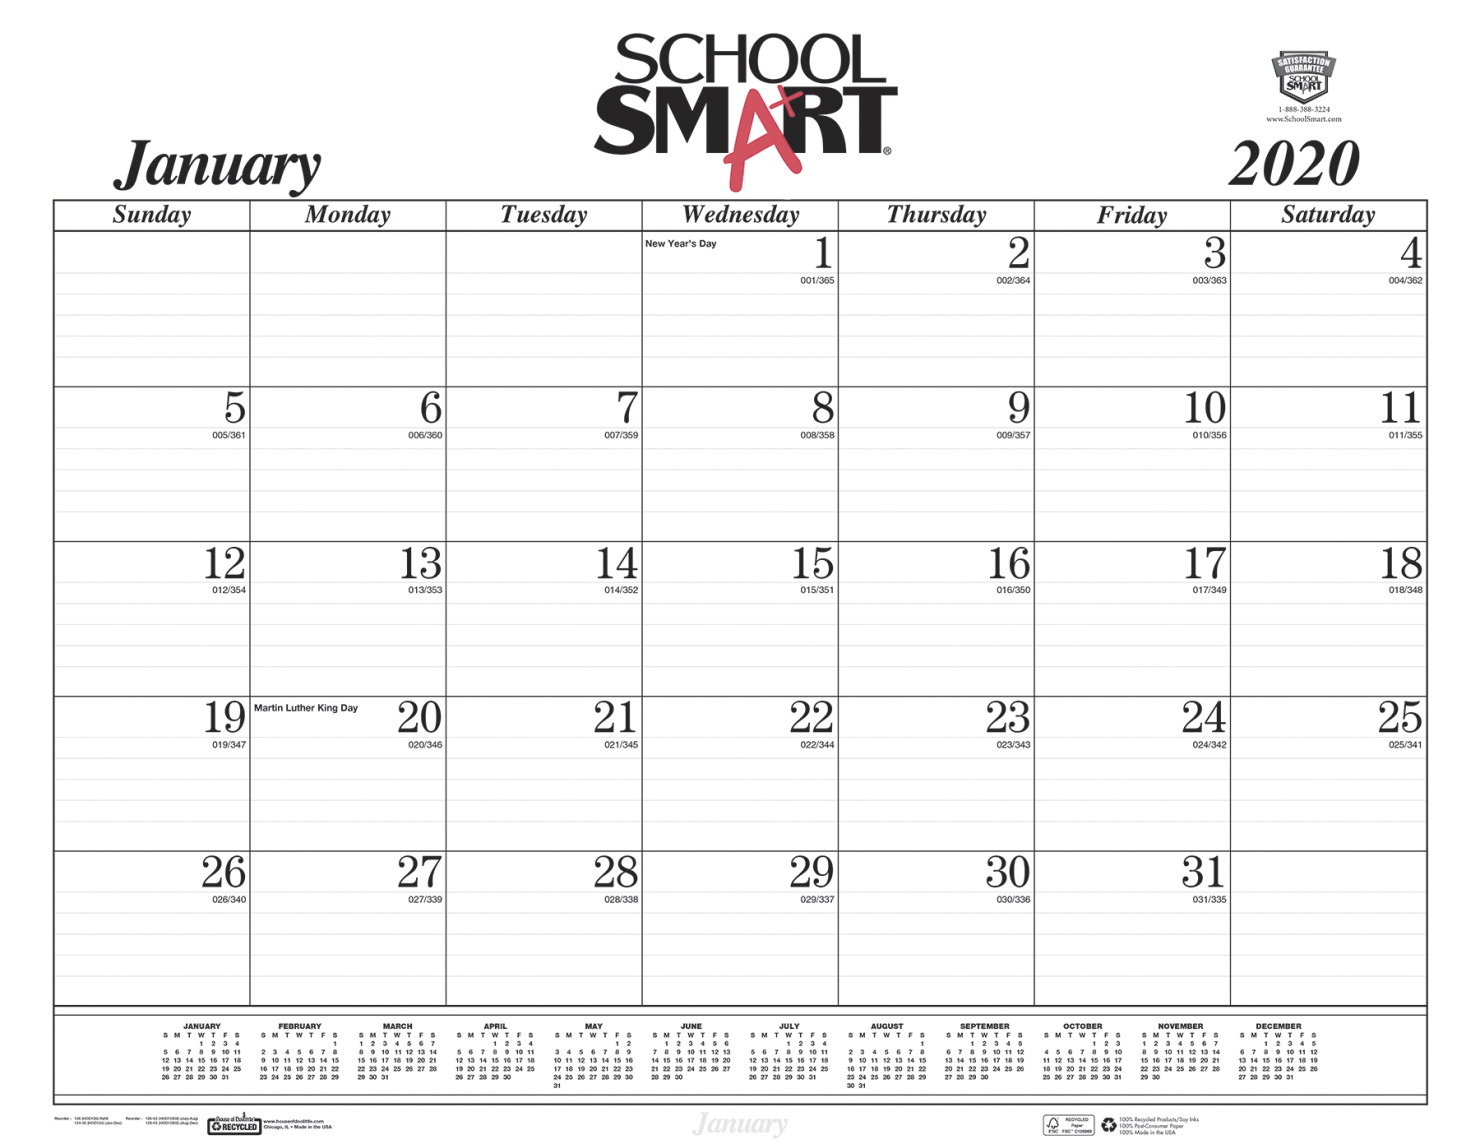 Calendar December 2020.School Smart Desk Pad Calendar Refill Sheets 12 Months January To December 2020